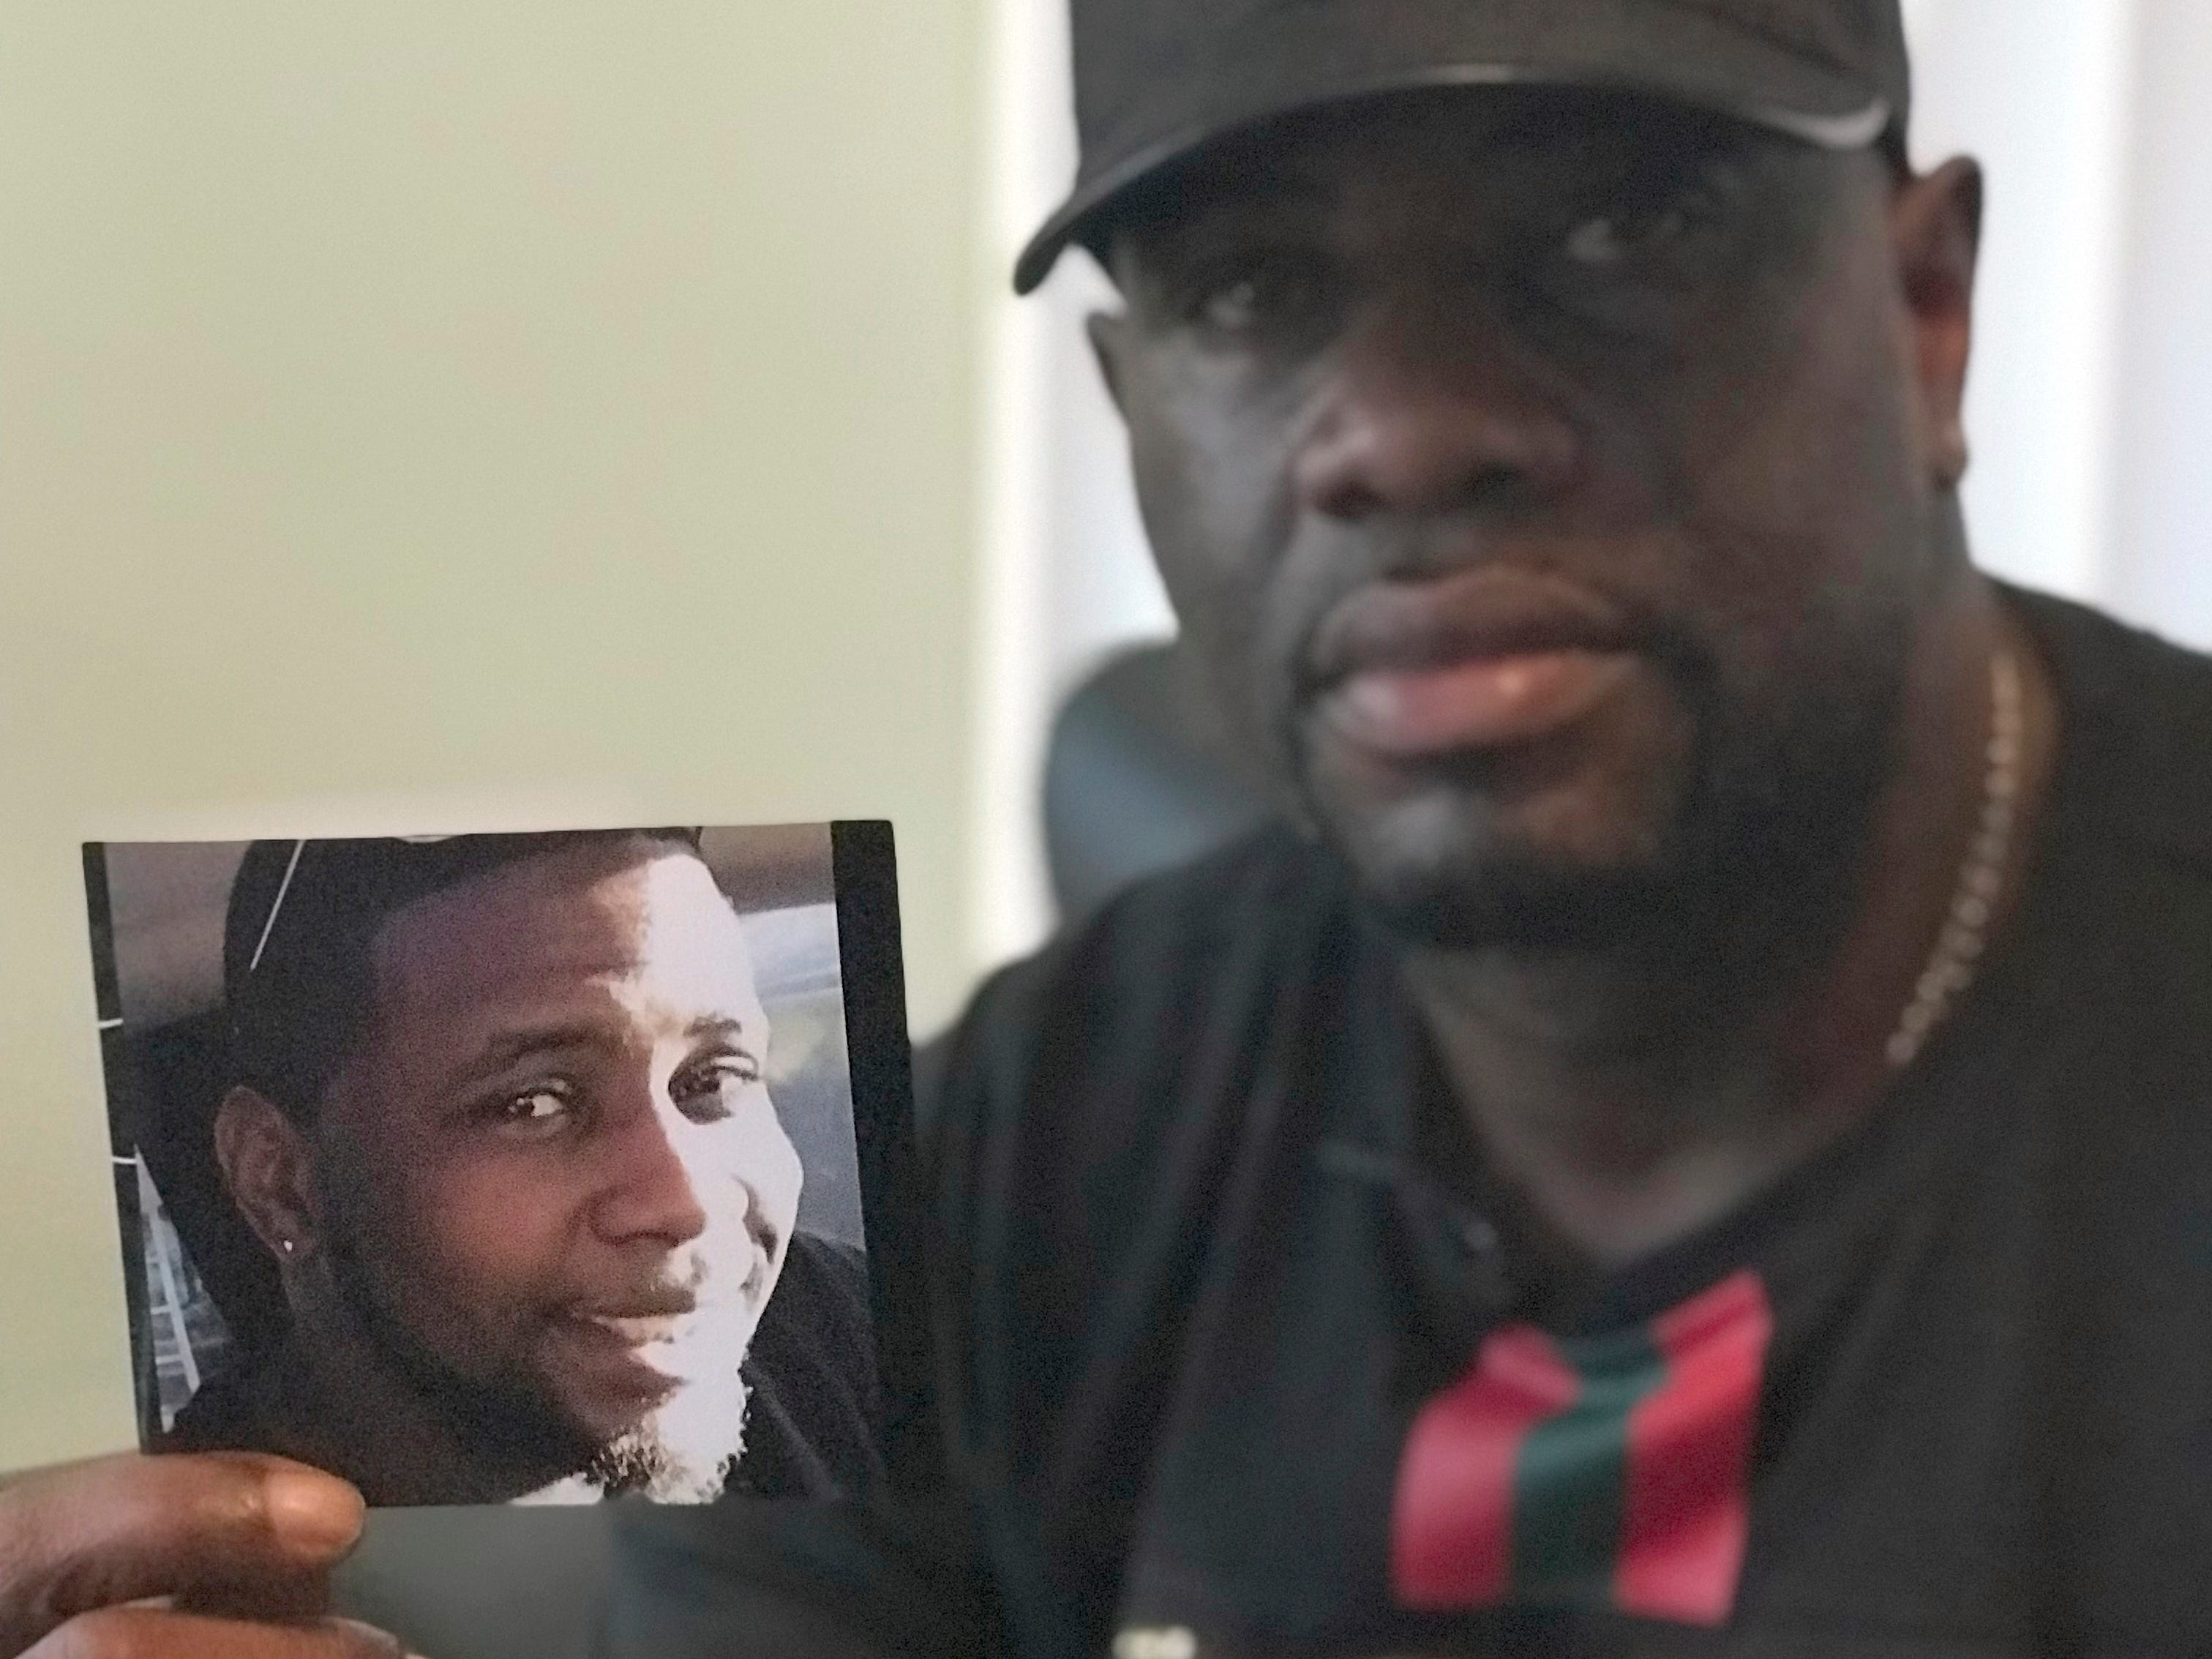 Michael McGlockton holds a photo of his son, Markeis McGlockton, who was shot and killed on July 19 in Clearwater, Florida during an argument over a parking spot.